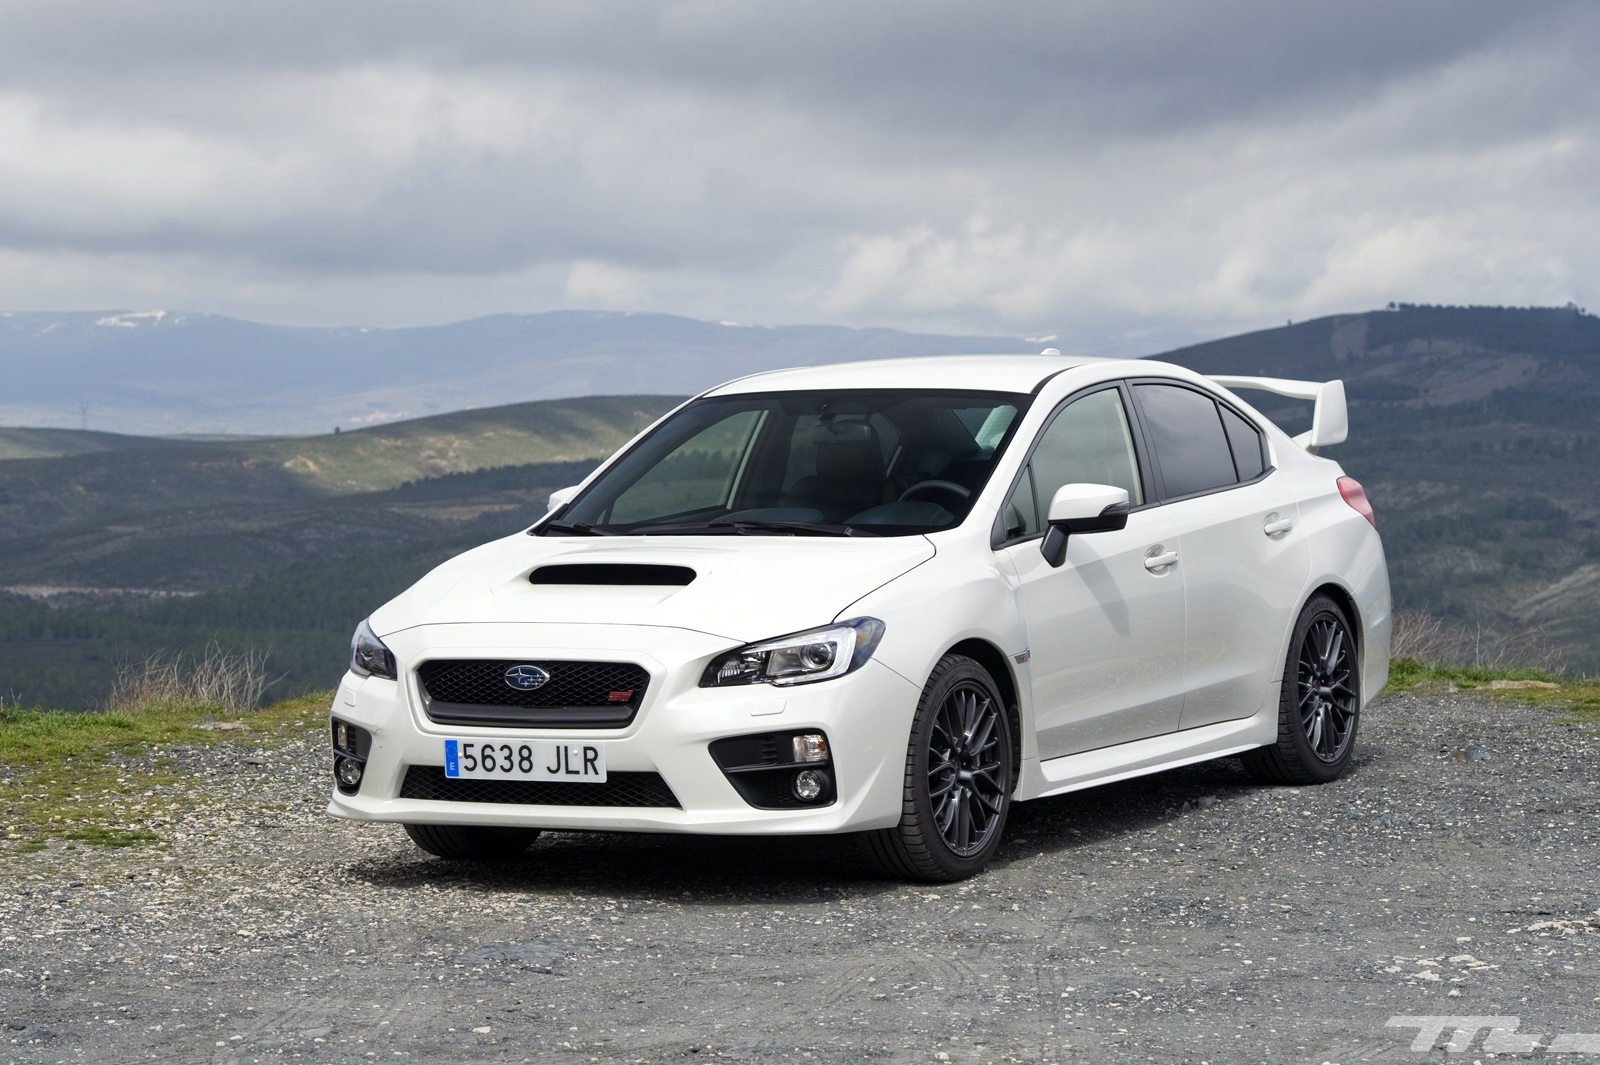 subaru wrx sti a prueba un deportivo anal gico en la era. Black Bedroom Furniture Sets. Home Design Ideas